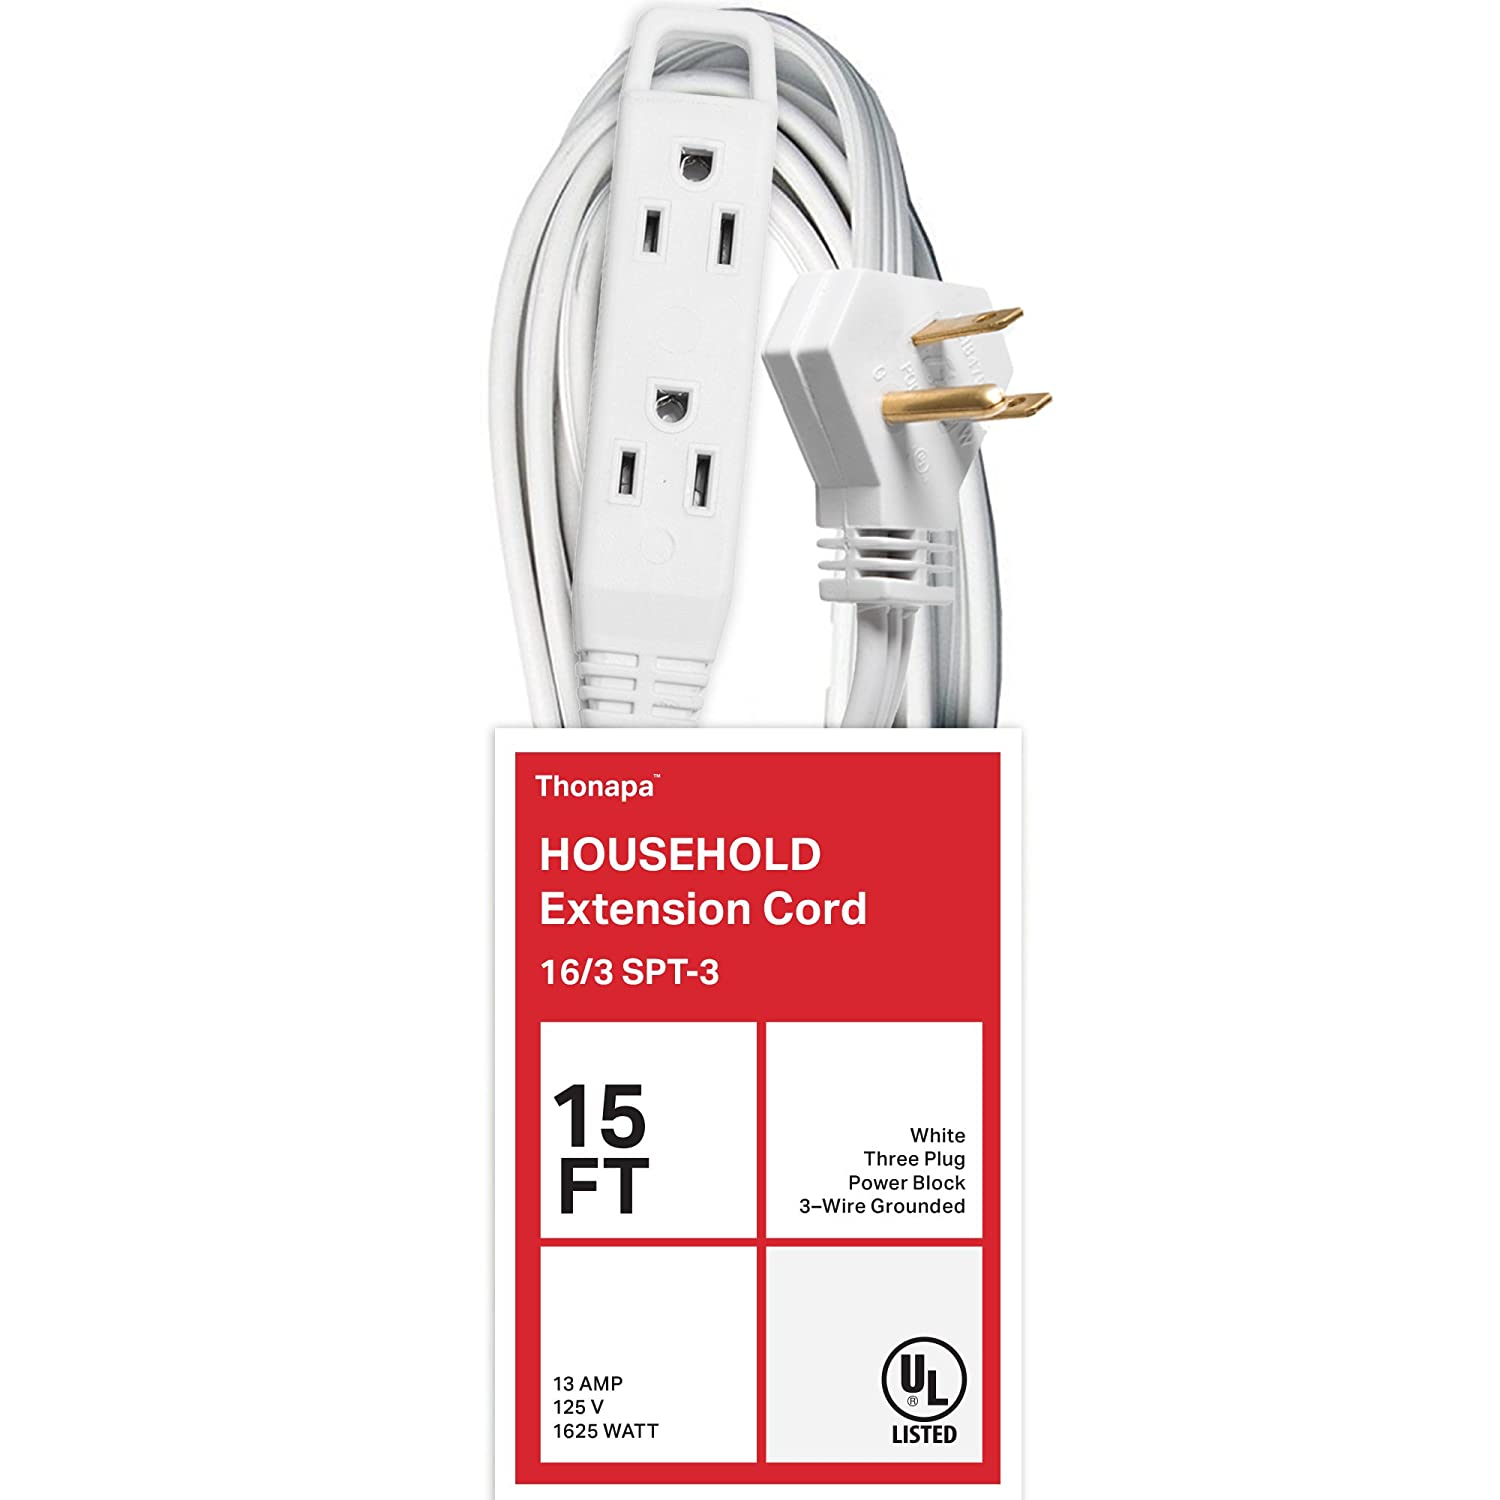 16//3 Durable White Cable TH-163W15P3 Thonapa 15 Ft Extension Cord with 3 Electrical Power Outlets